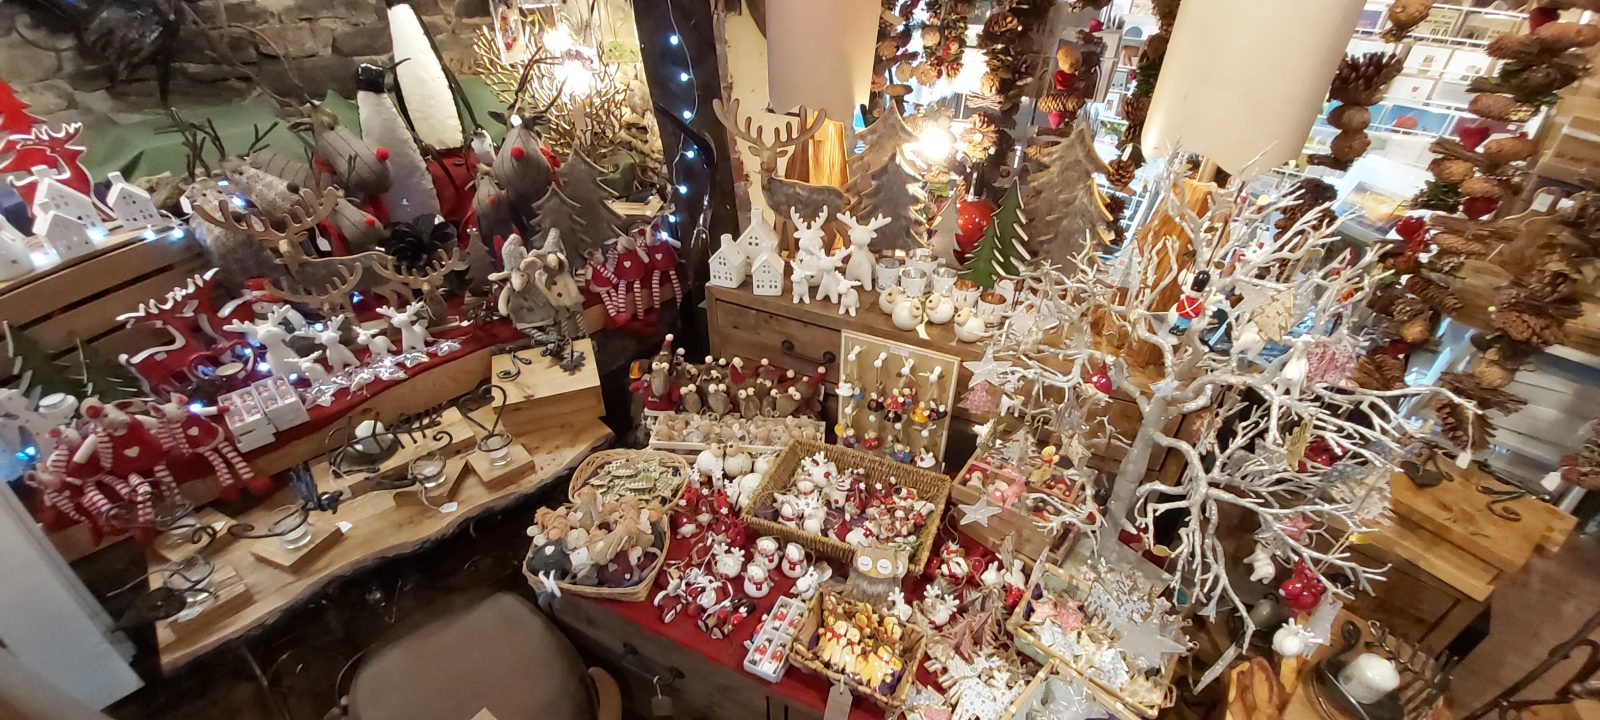 Christmas Decorations | Craft Works gallery of Corbridge